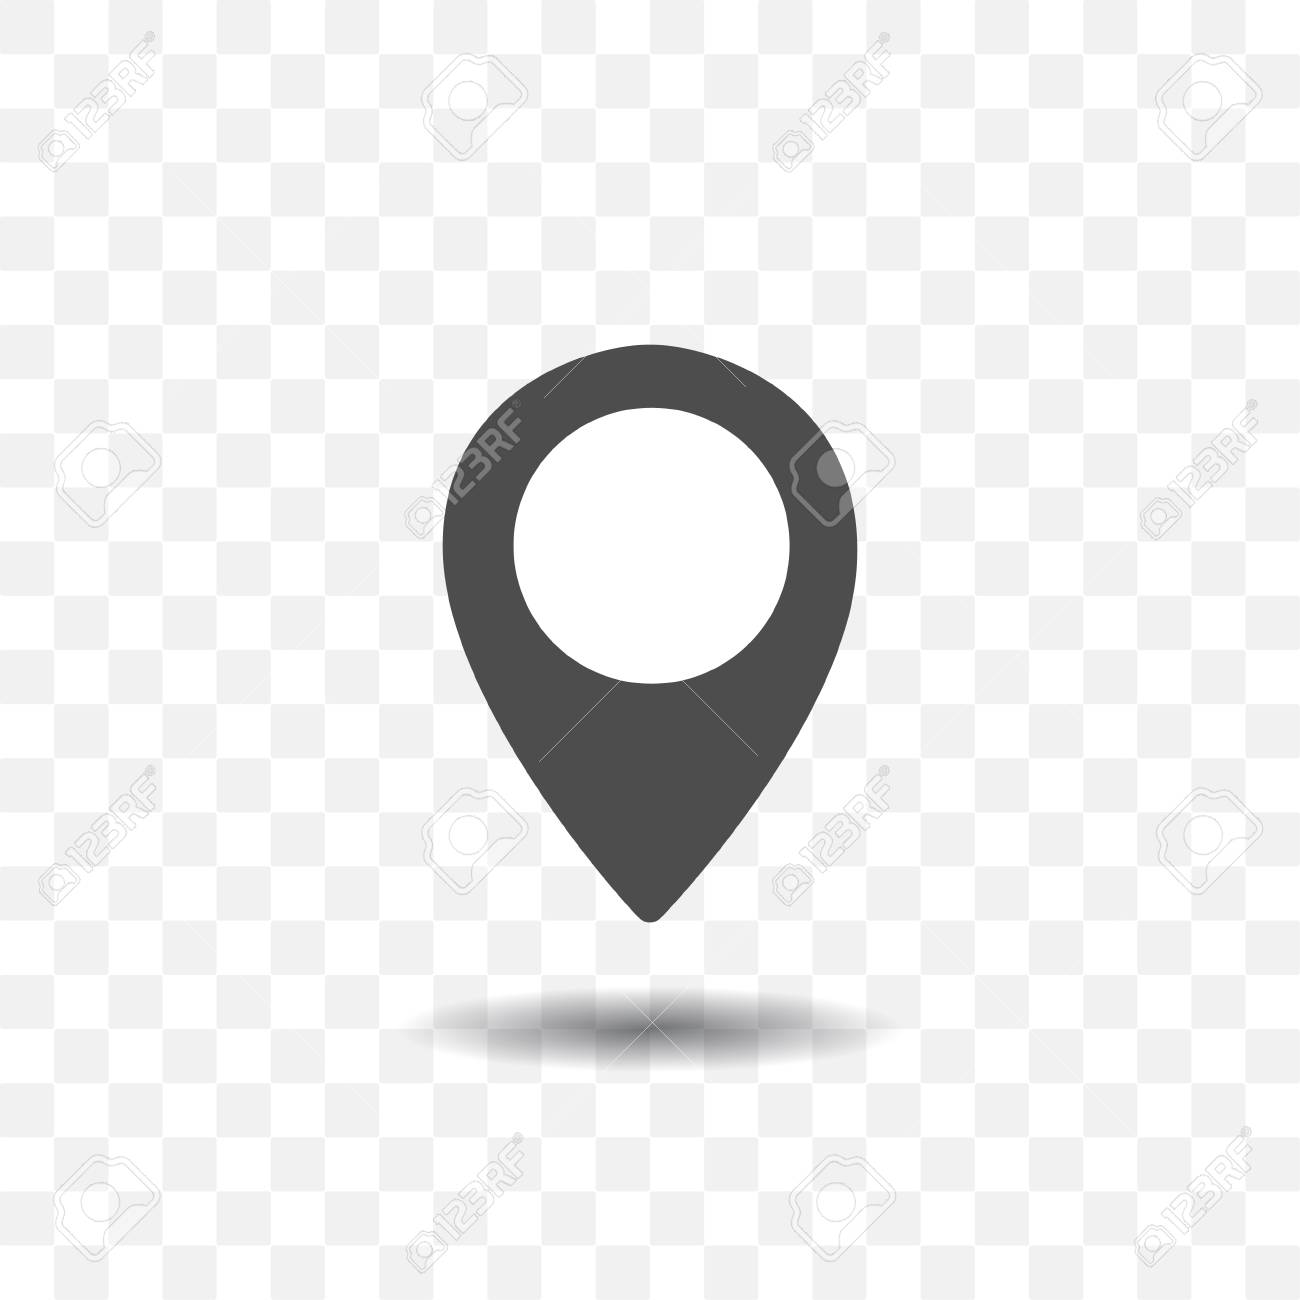 map location pointer icon with shadow on transparent background royalty free cliparts vectors and stock illustration image 95040771 map location pointer icon with shadow on transparent background